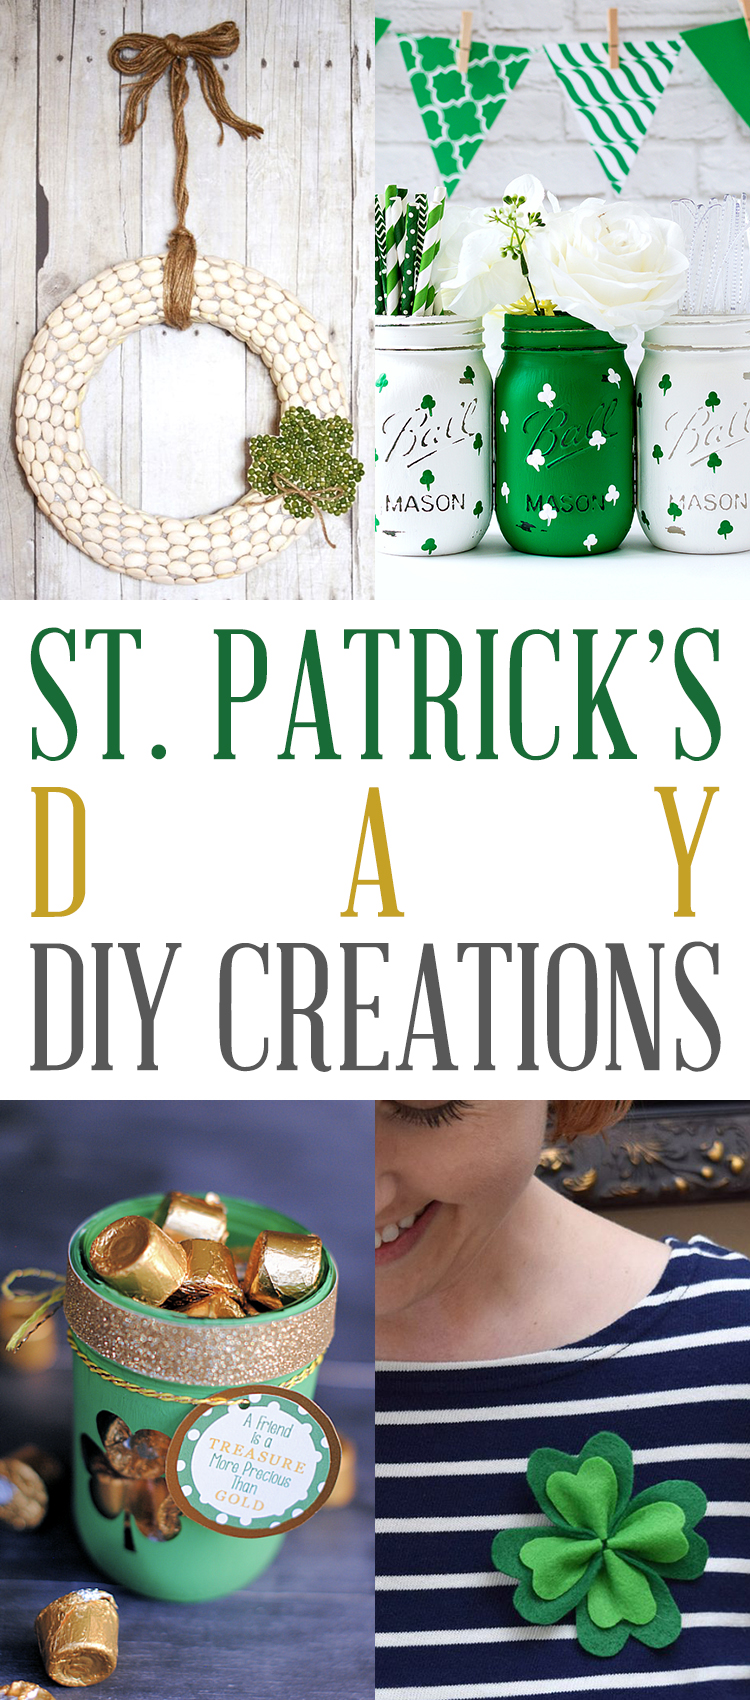 St. Patrick's Day DIY Creations